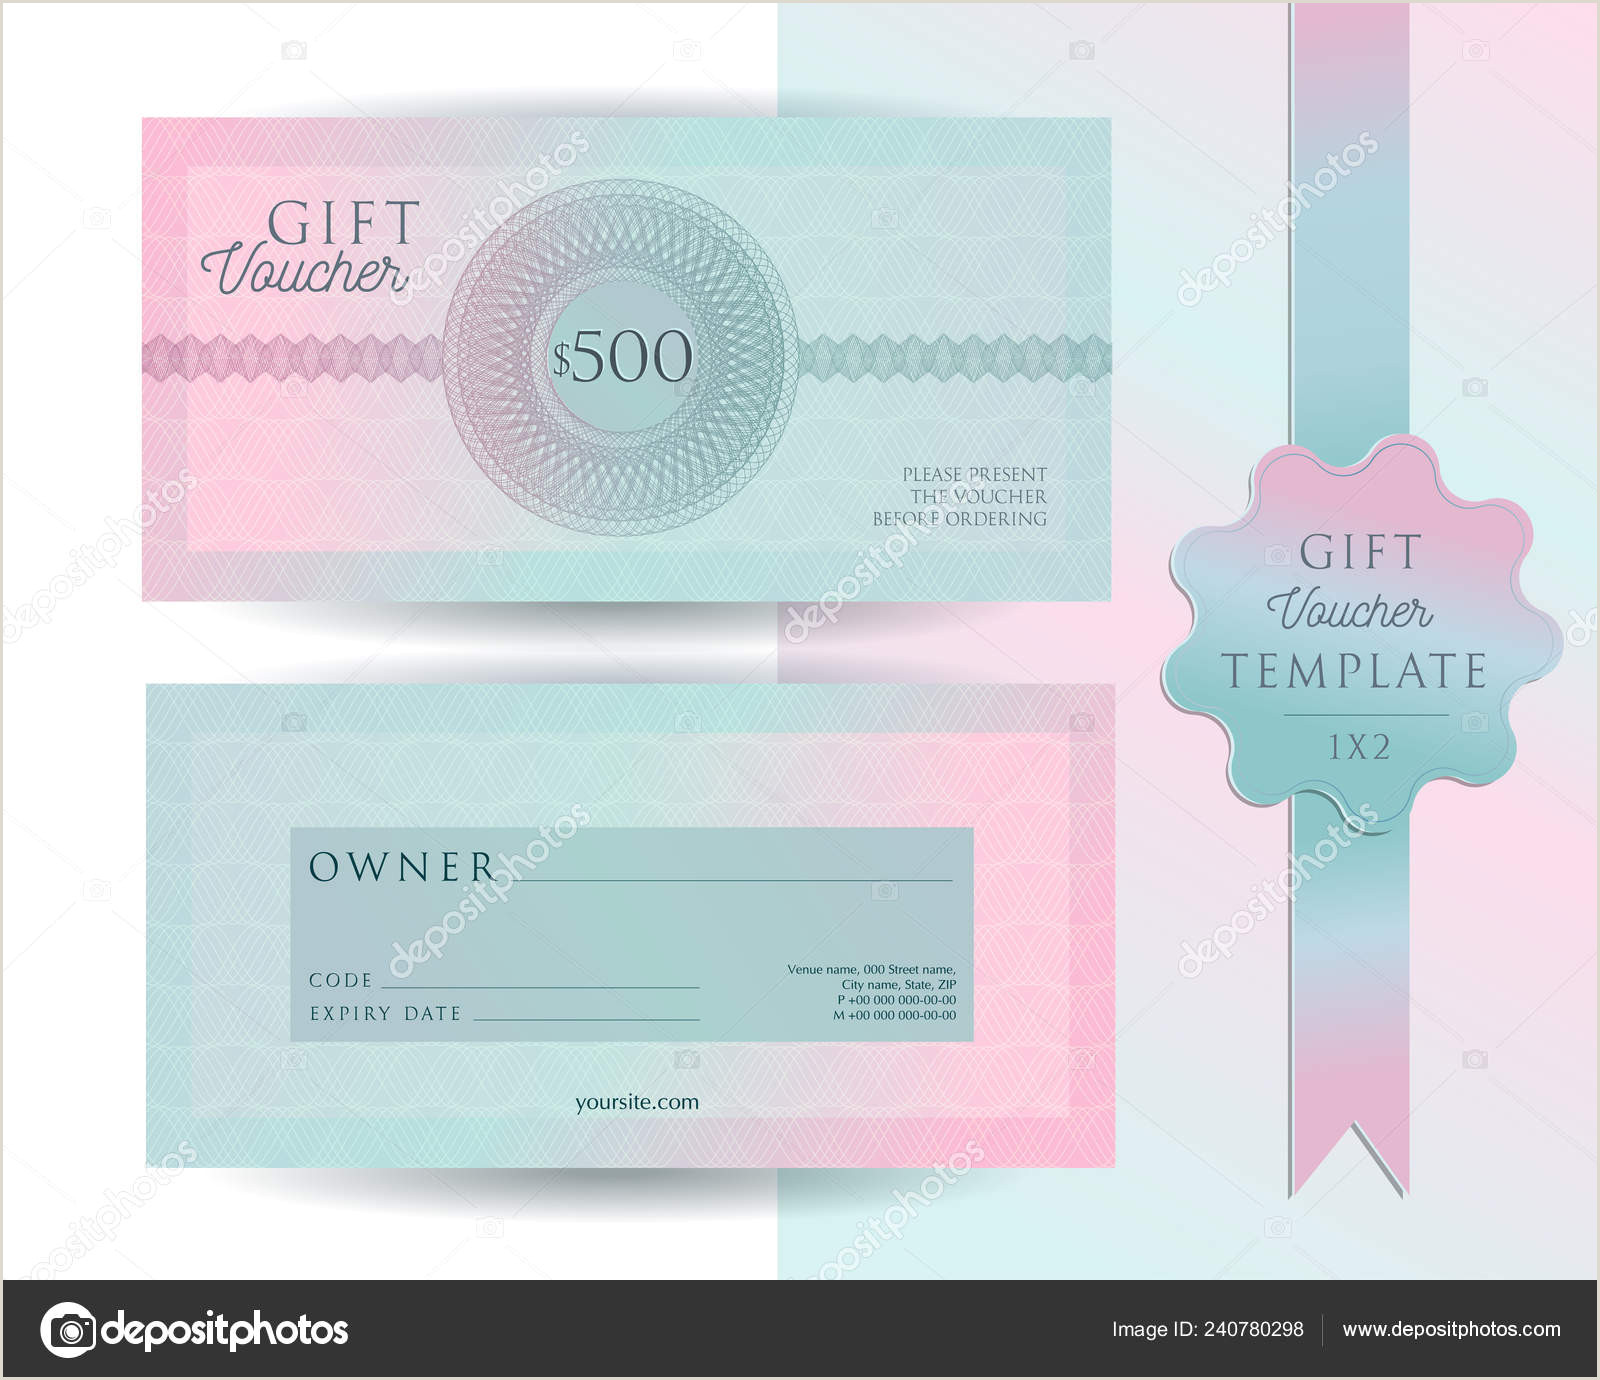 Customer Info Card Template Gift Voucher Card Template Modern Discount 500 Certificate Layout With Guilloche Watermarks Pattern Fashion Bright Pink Mint Background Design With